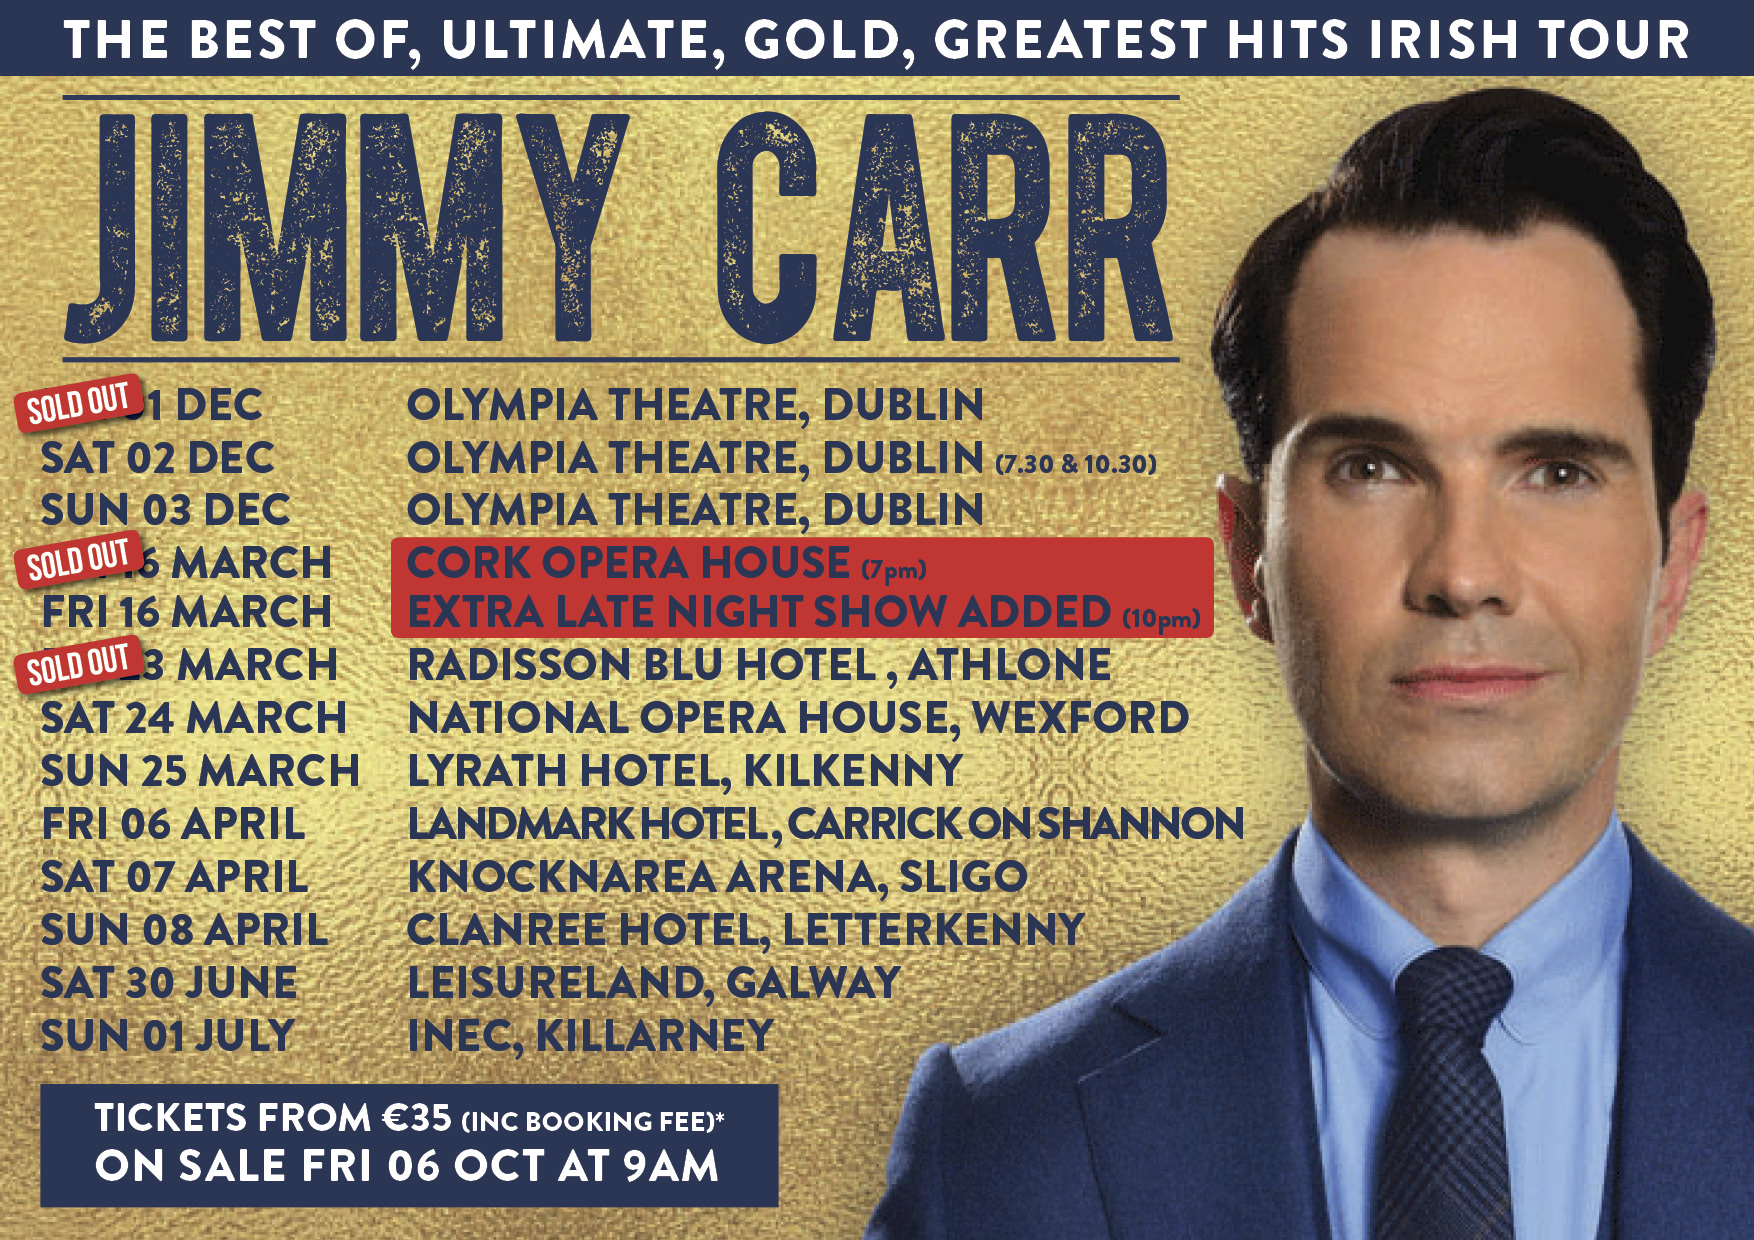 Jimmy Carr The Best Of Ultimate Gold Greatest Hits Tour